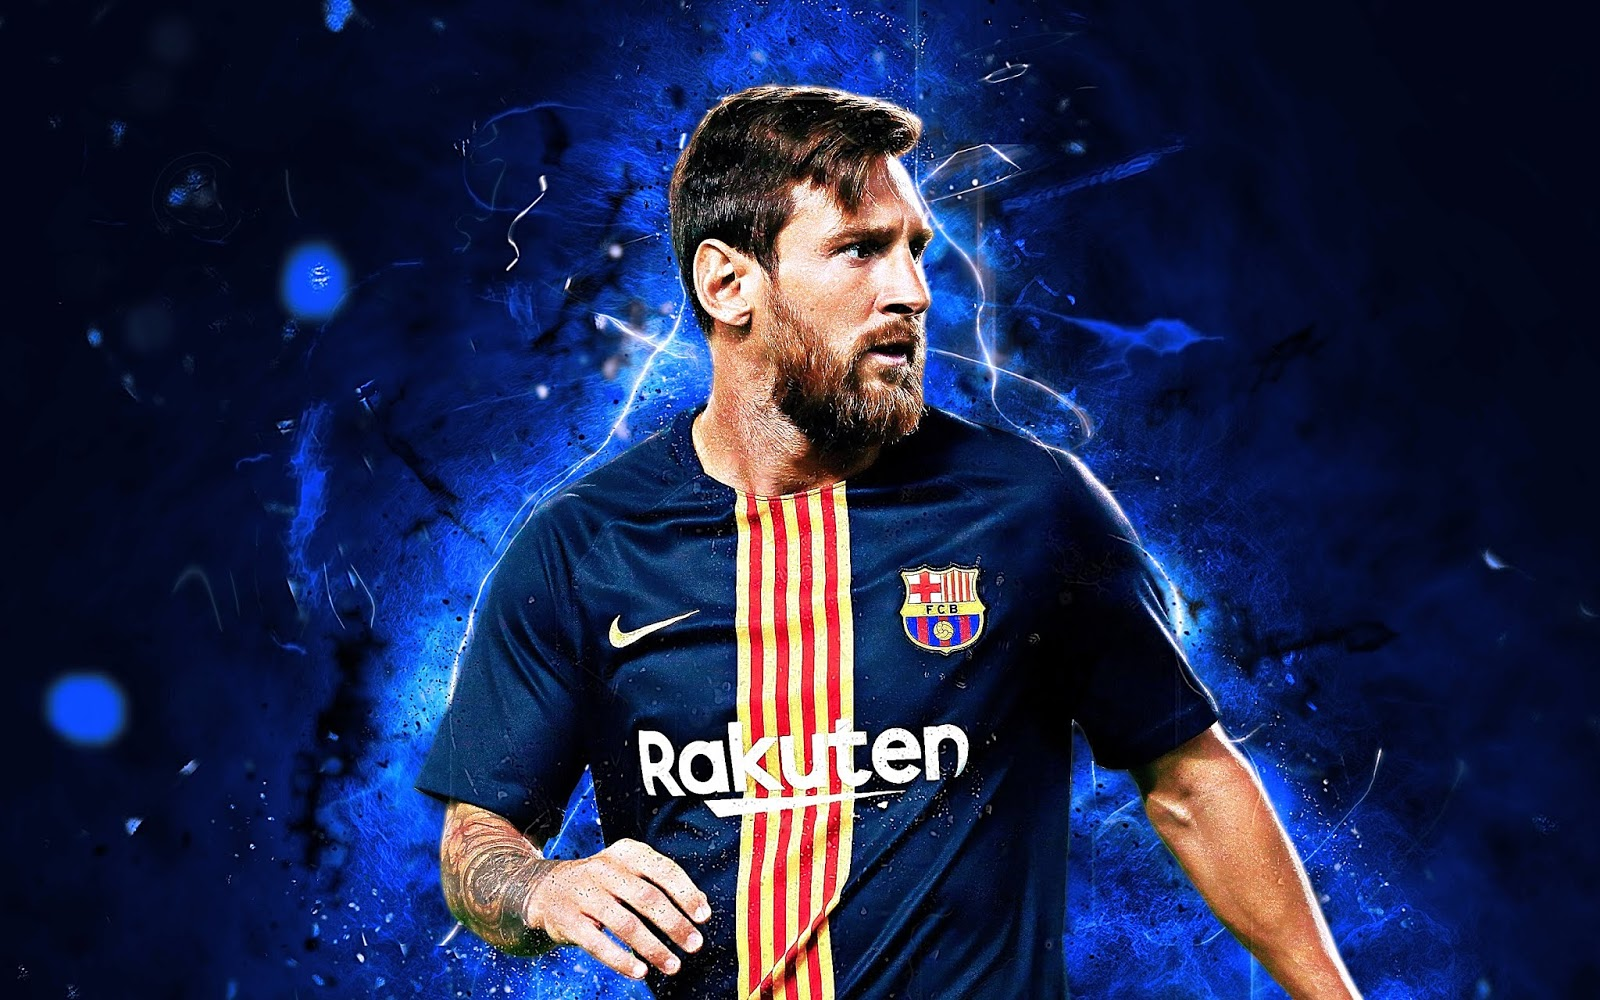 download Download 15 latest Messi wallpapers for iPhone and 1600x1000